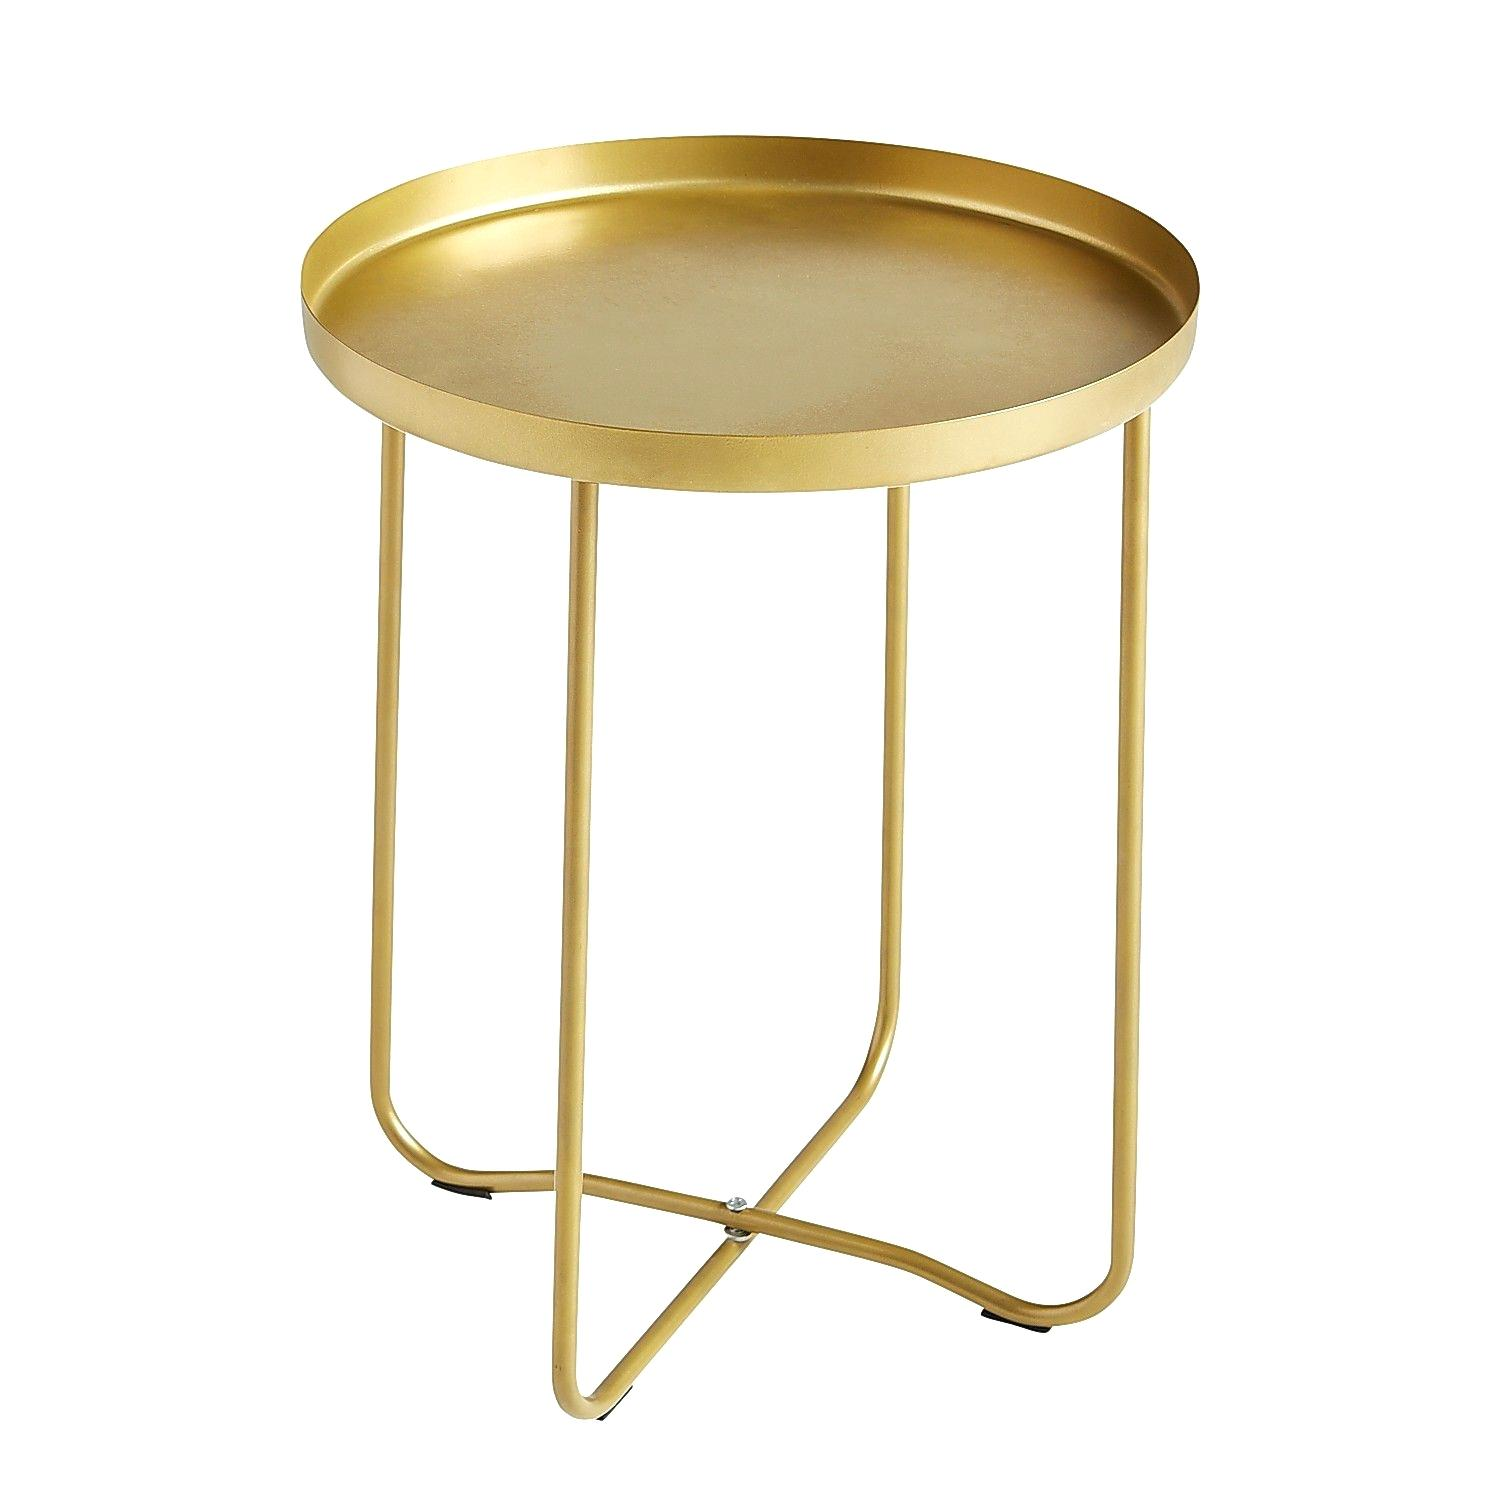 gold accent table looknook save this item open gallery tray antique faceted with glass top adidas wrestling shoes high dining chairs gray recliner sectional sofas edmonton solid